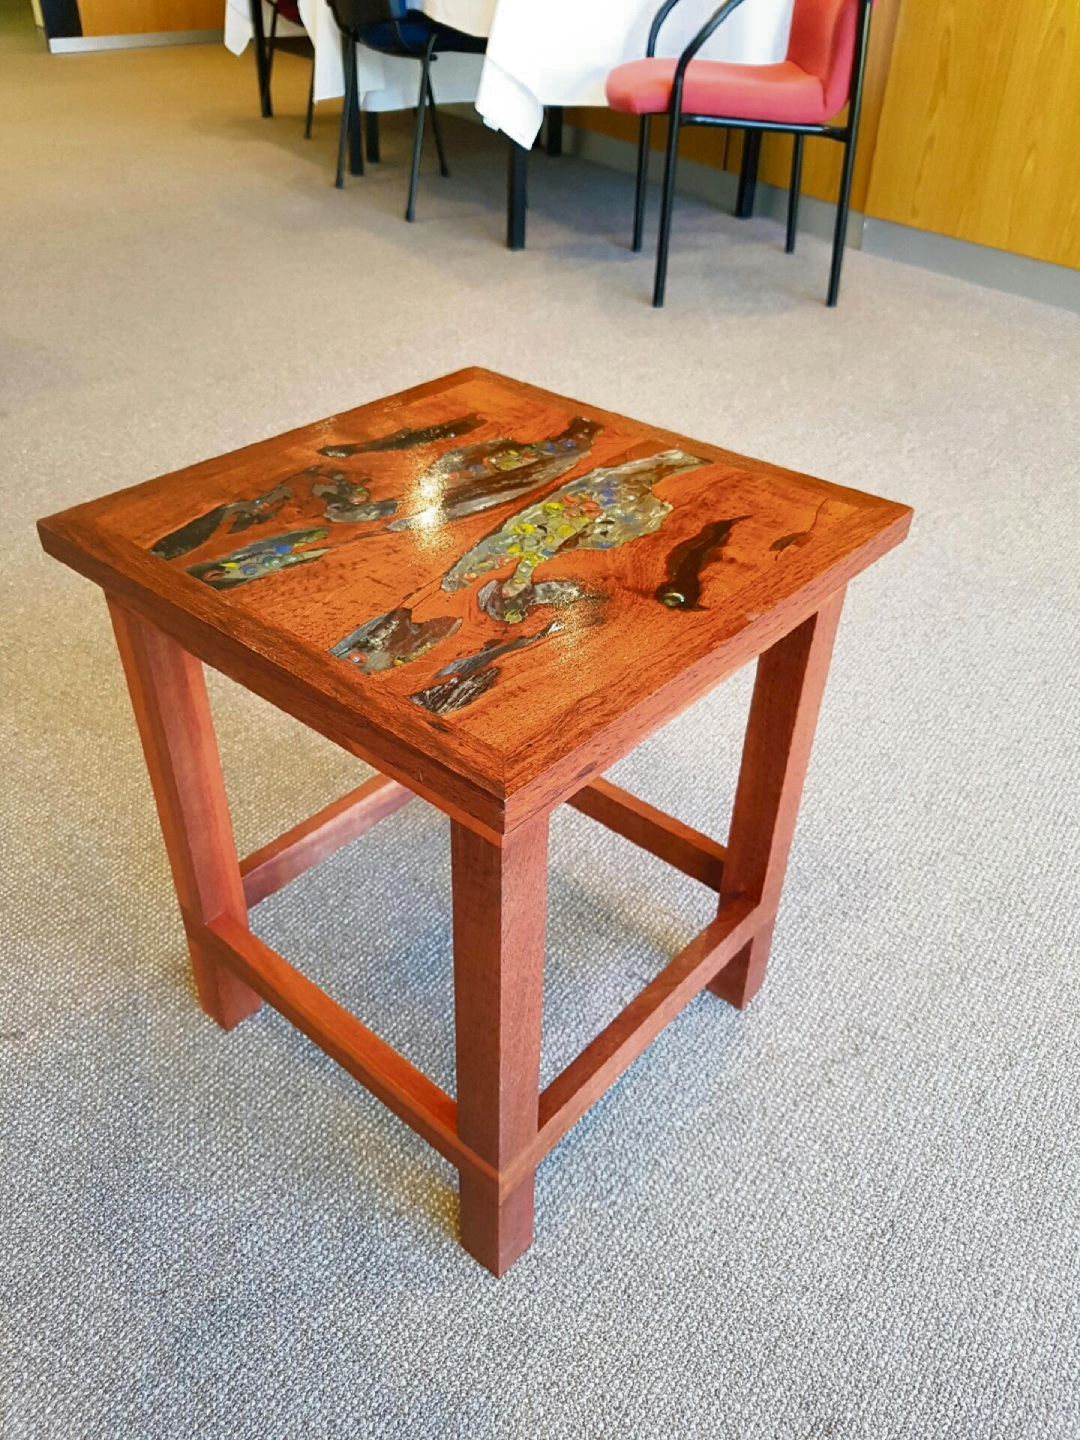 The missing table.